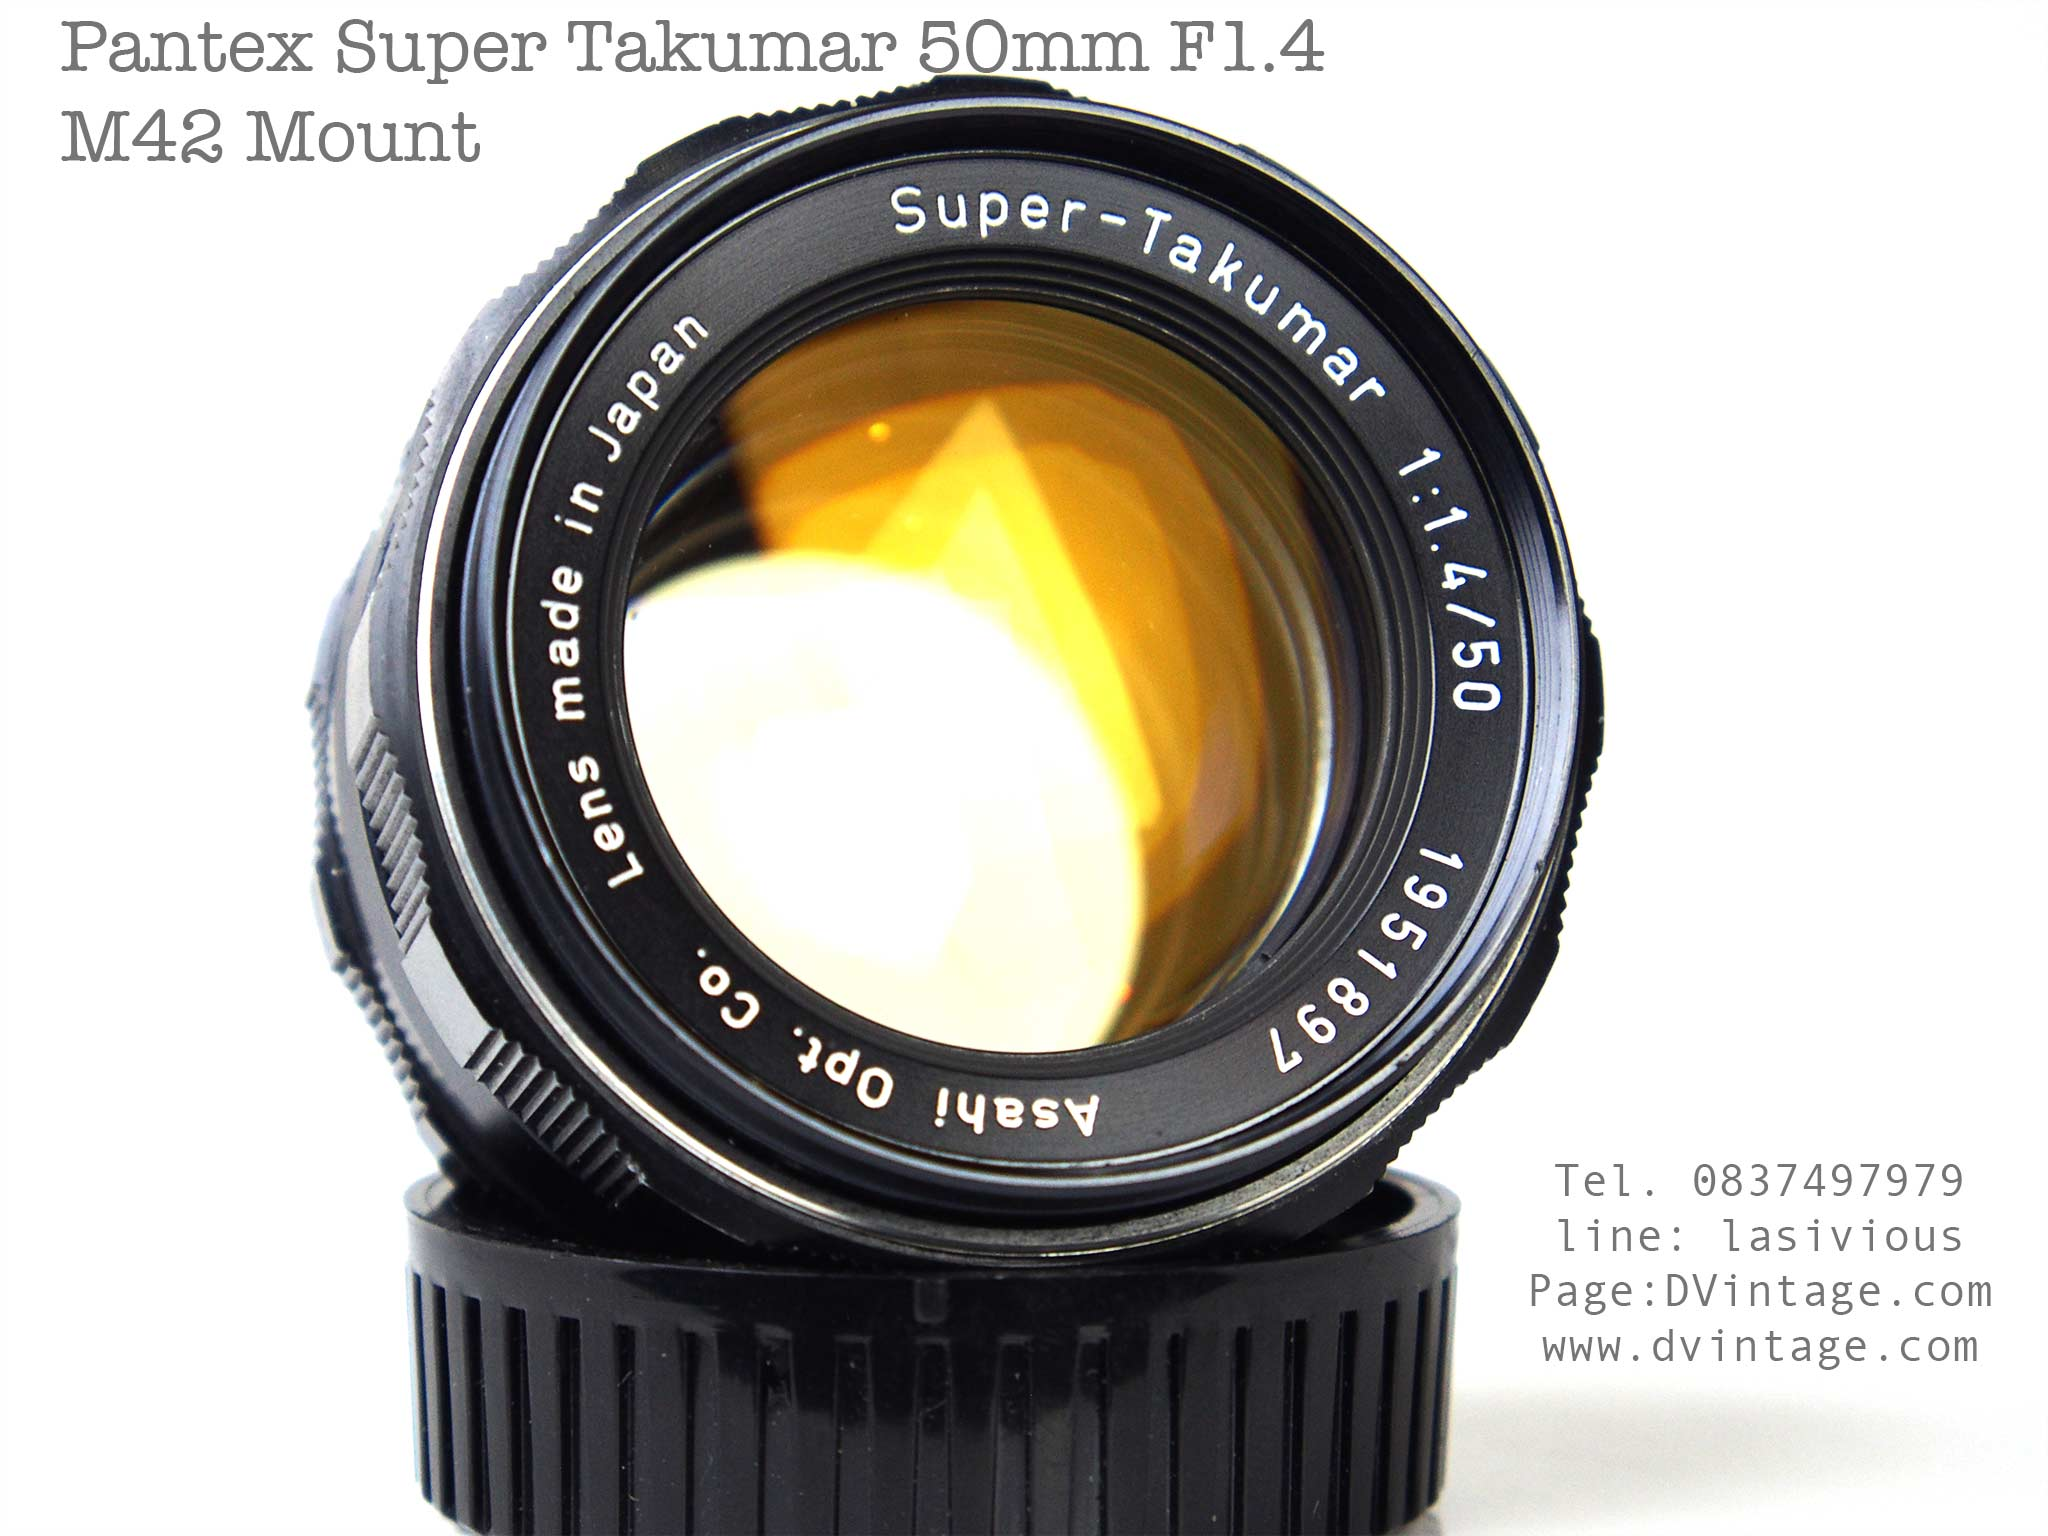 เลนส์ Super takuma 50 1.4 M42 Mount